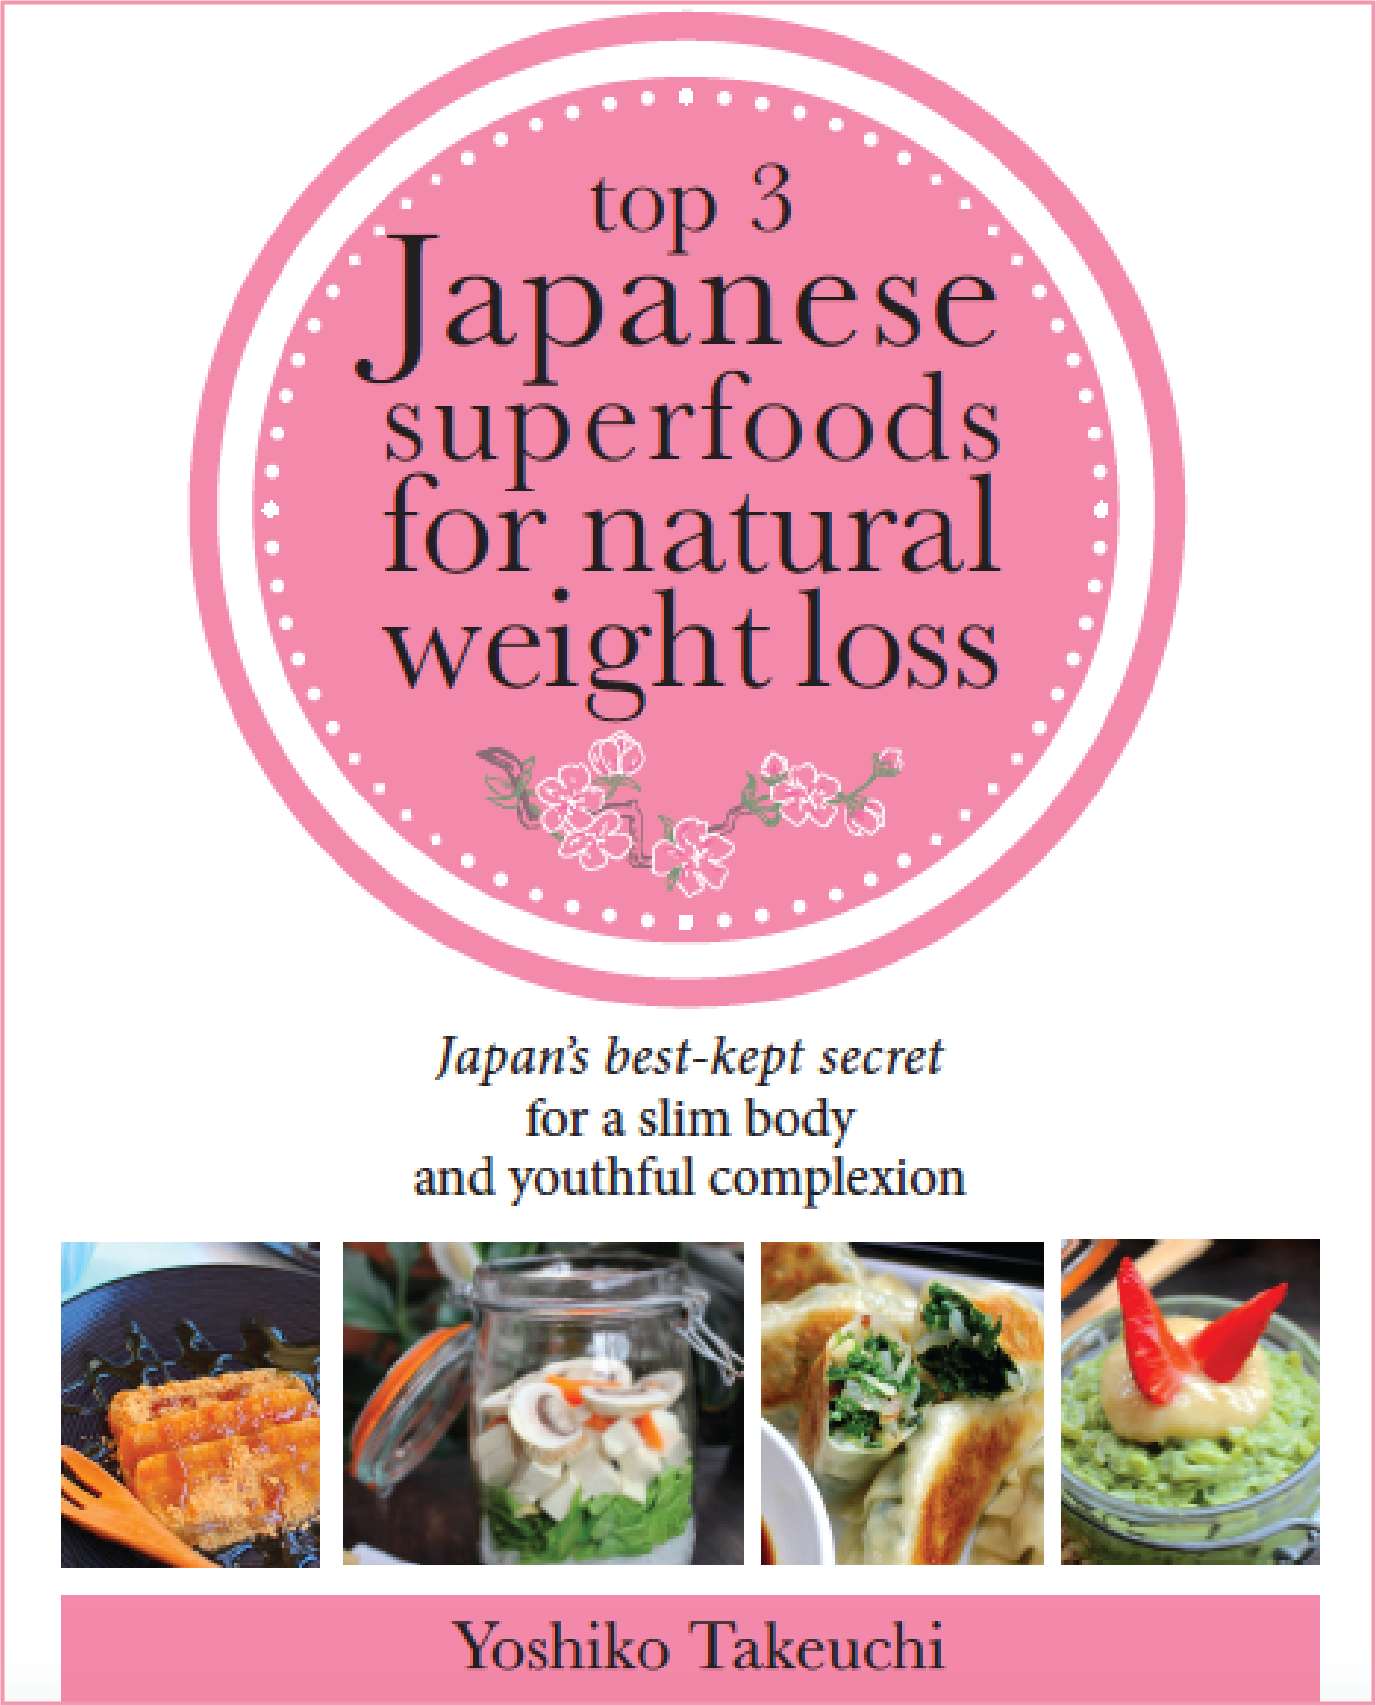 Yoshiko - Weight Loss E-Book